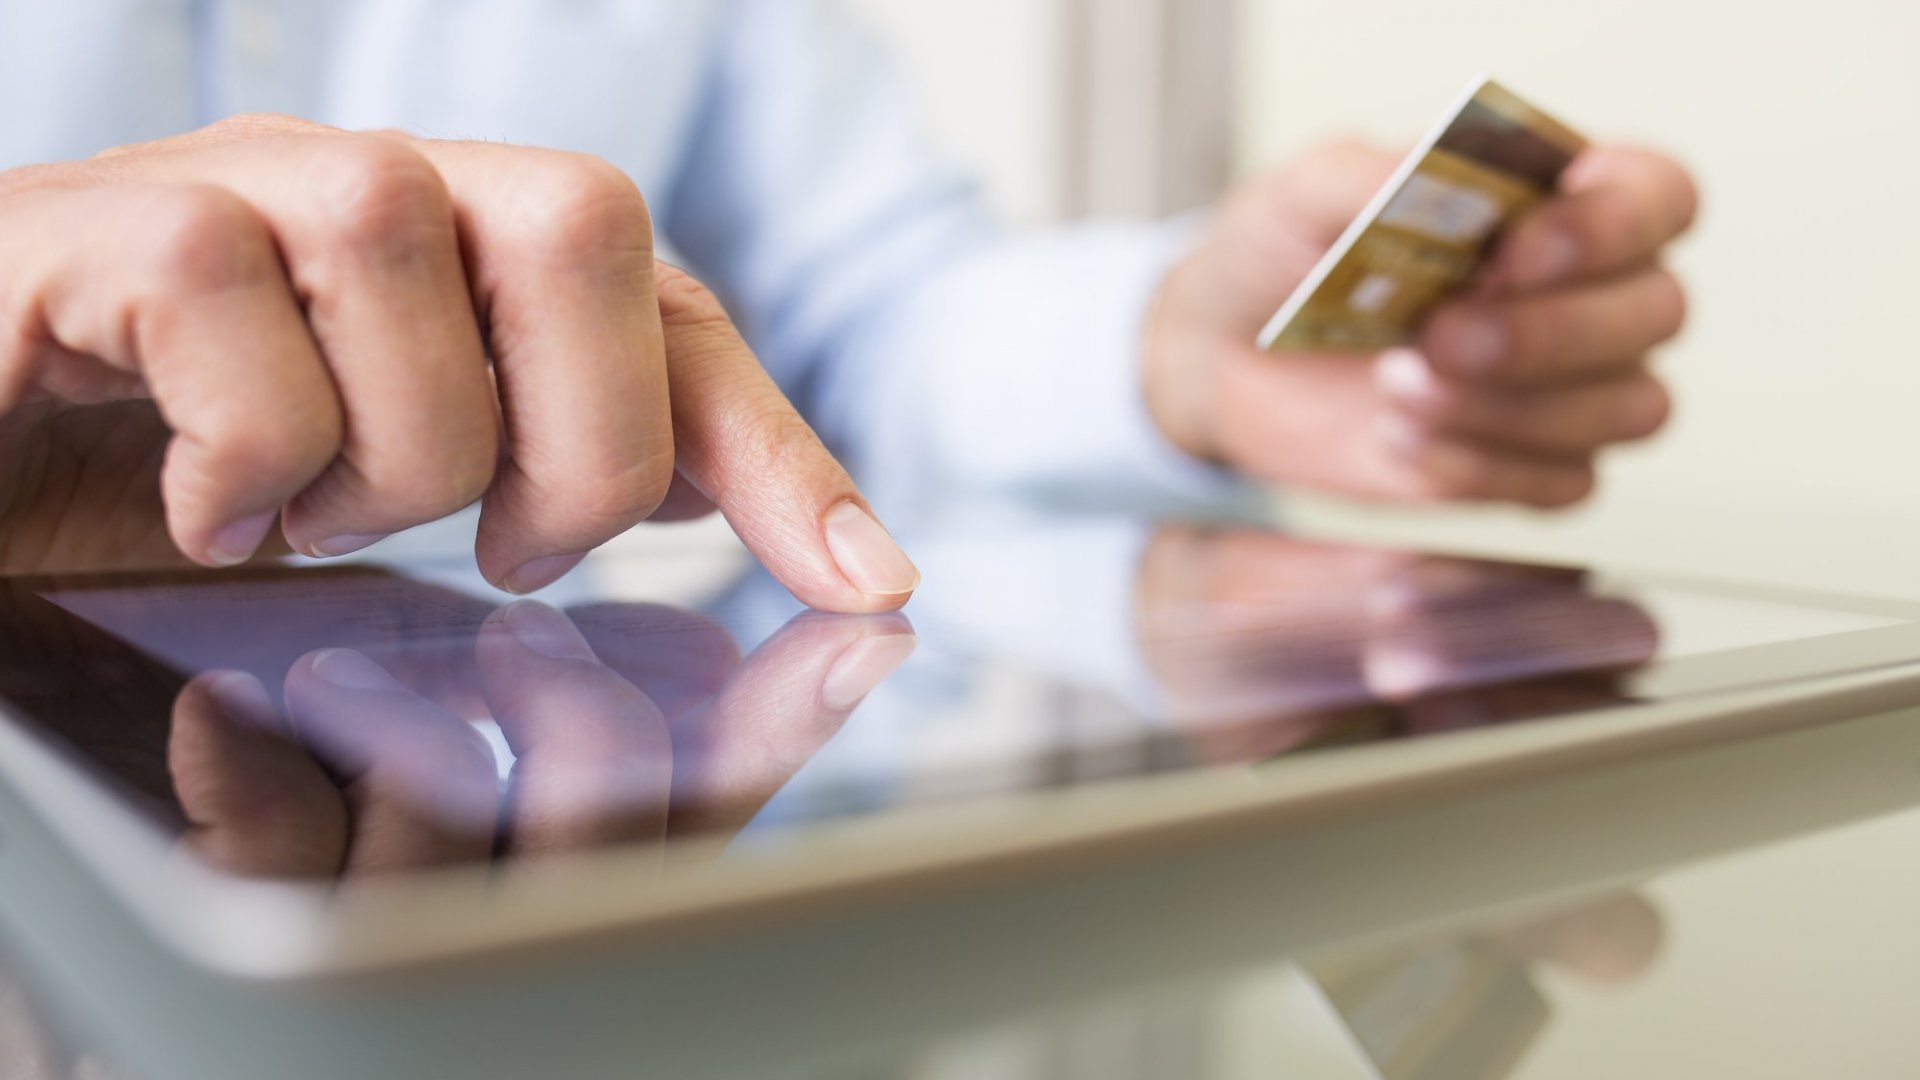 6 Tips For Convincing Customers to Purchase Your E-Commerce Product